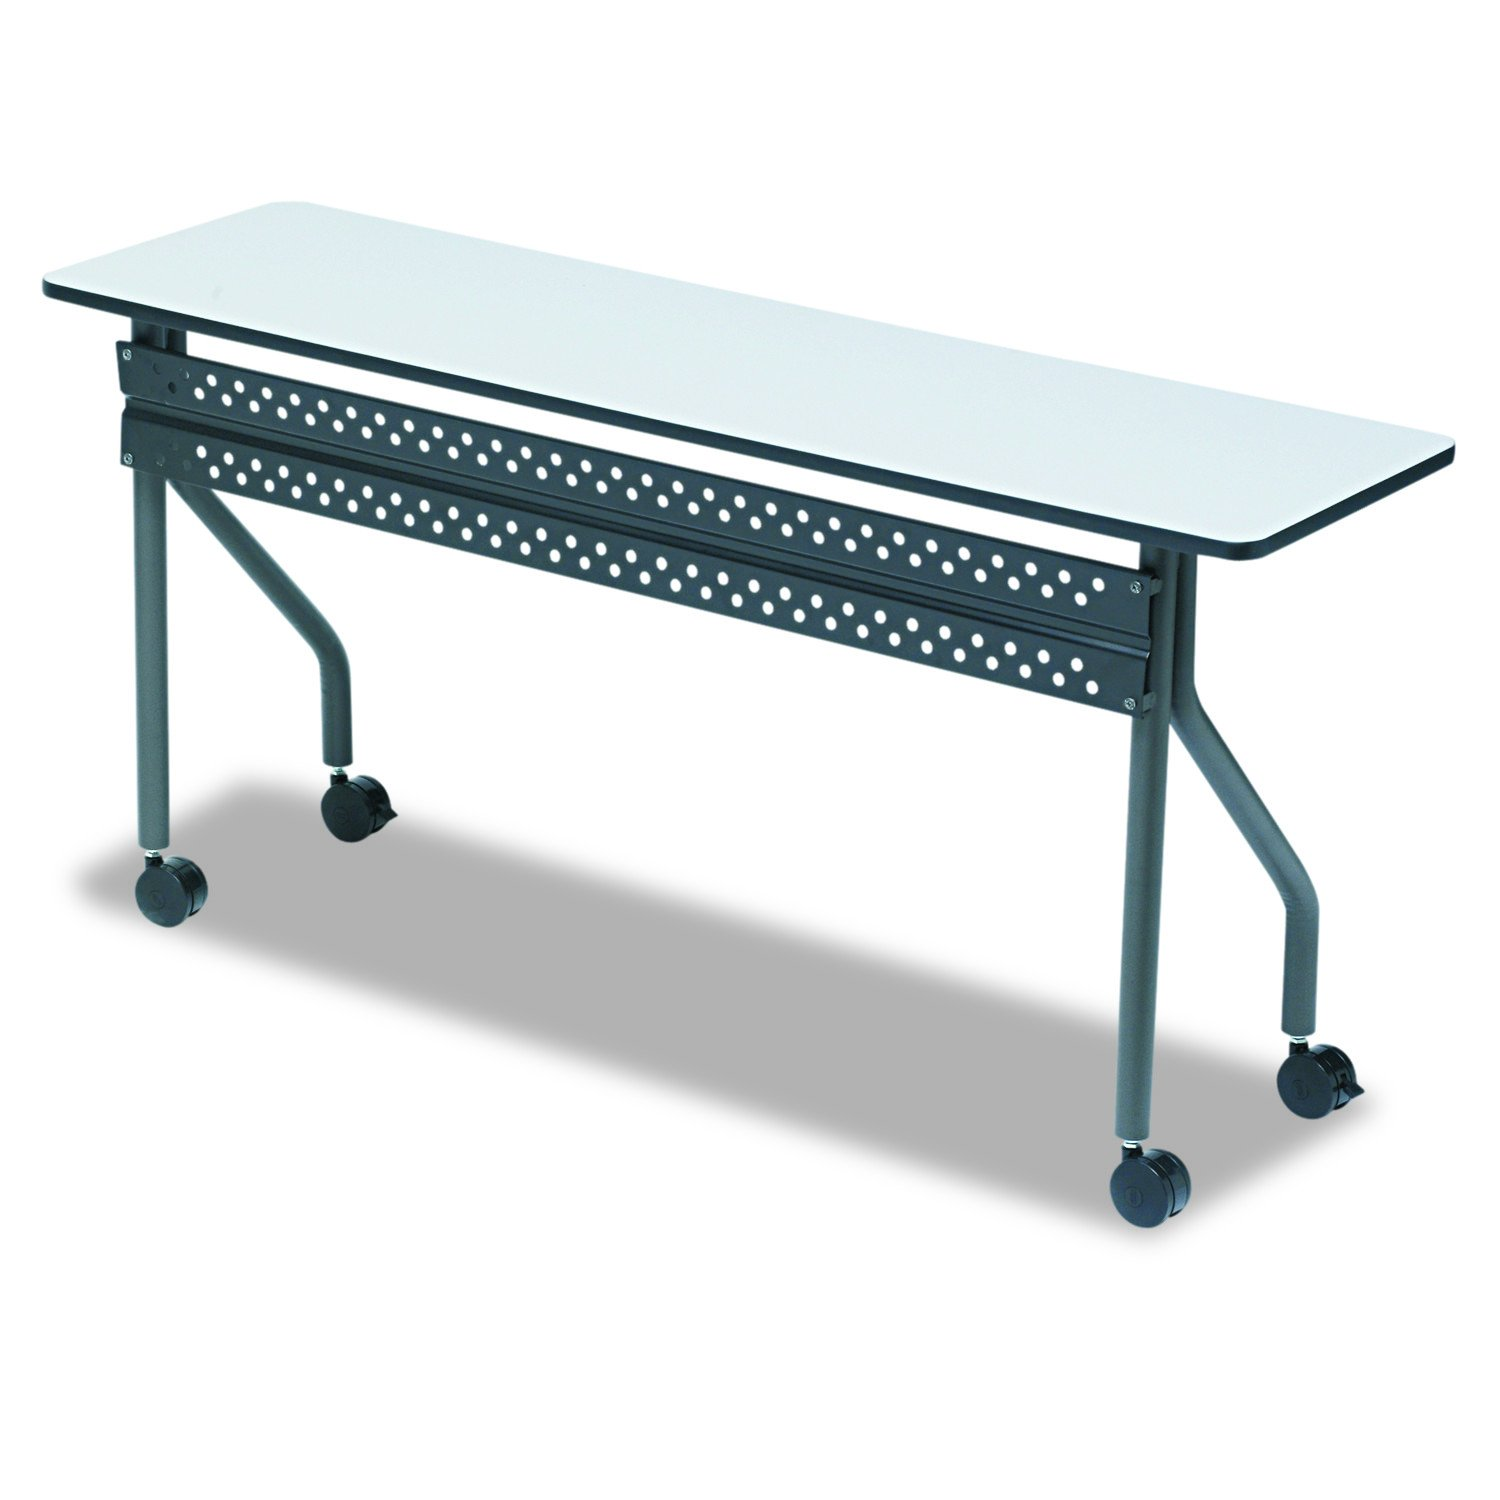 Iceberg ICE68057 OfficeWorks Mobile Training Table with Charcoal Legs, Melamine Laminate, 60'' Length x 18'' Width x 29'' Height, Gray